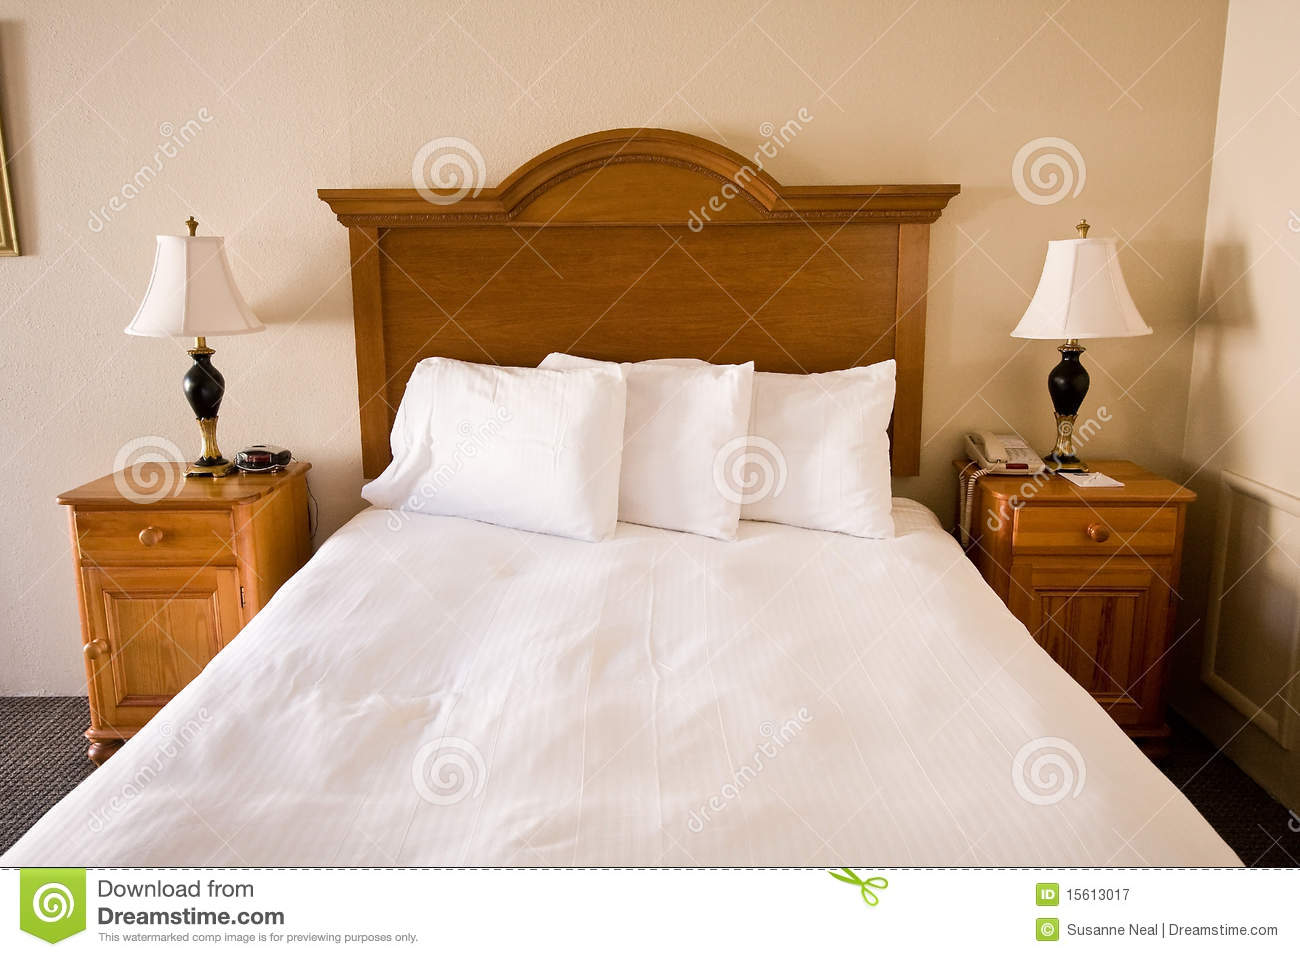 Simple Bed Simple Bed Headboard Nightstands Lamps Stock Image Image Of